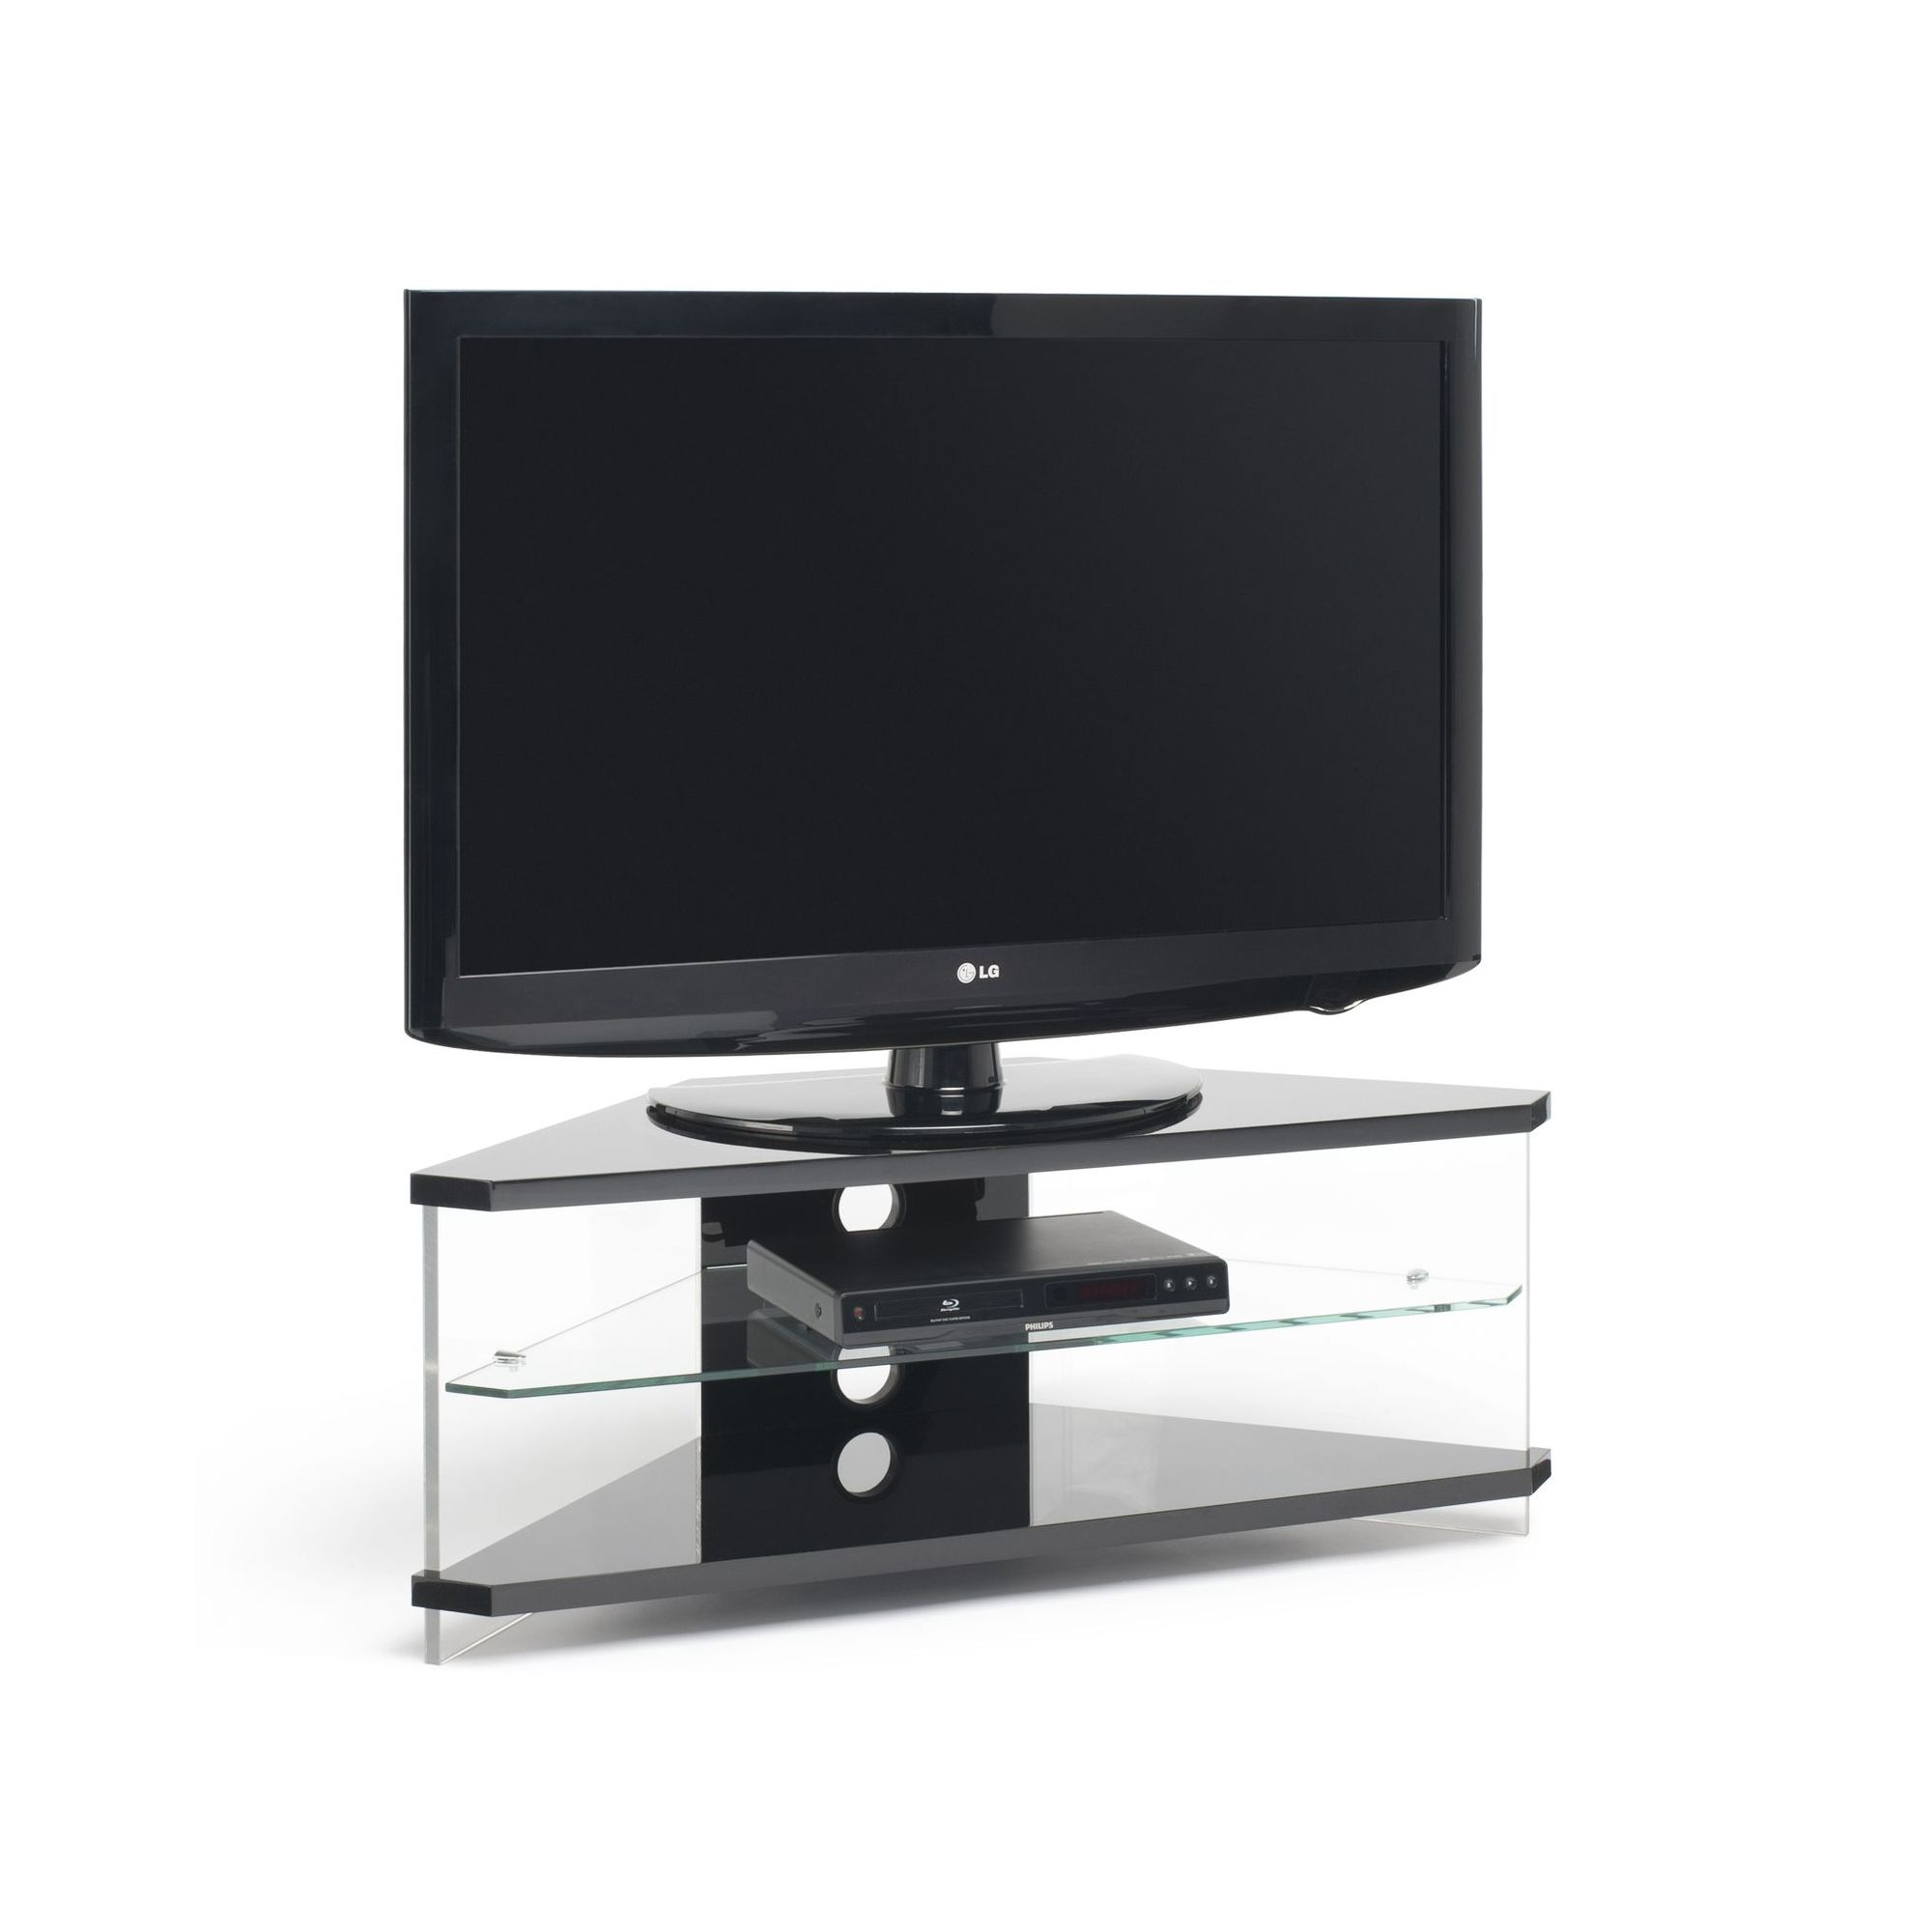 Techlink Air Acrylic and Glass 46'' Corner TV Stand - Black at Tesco Direct